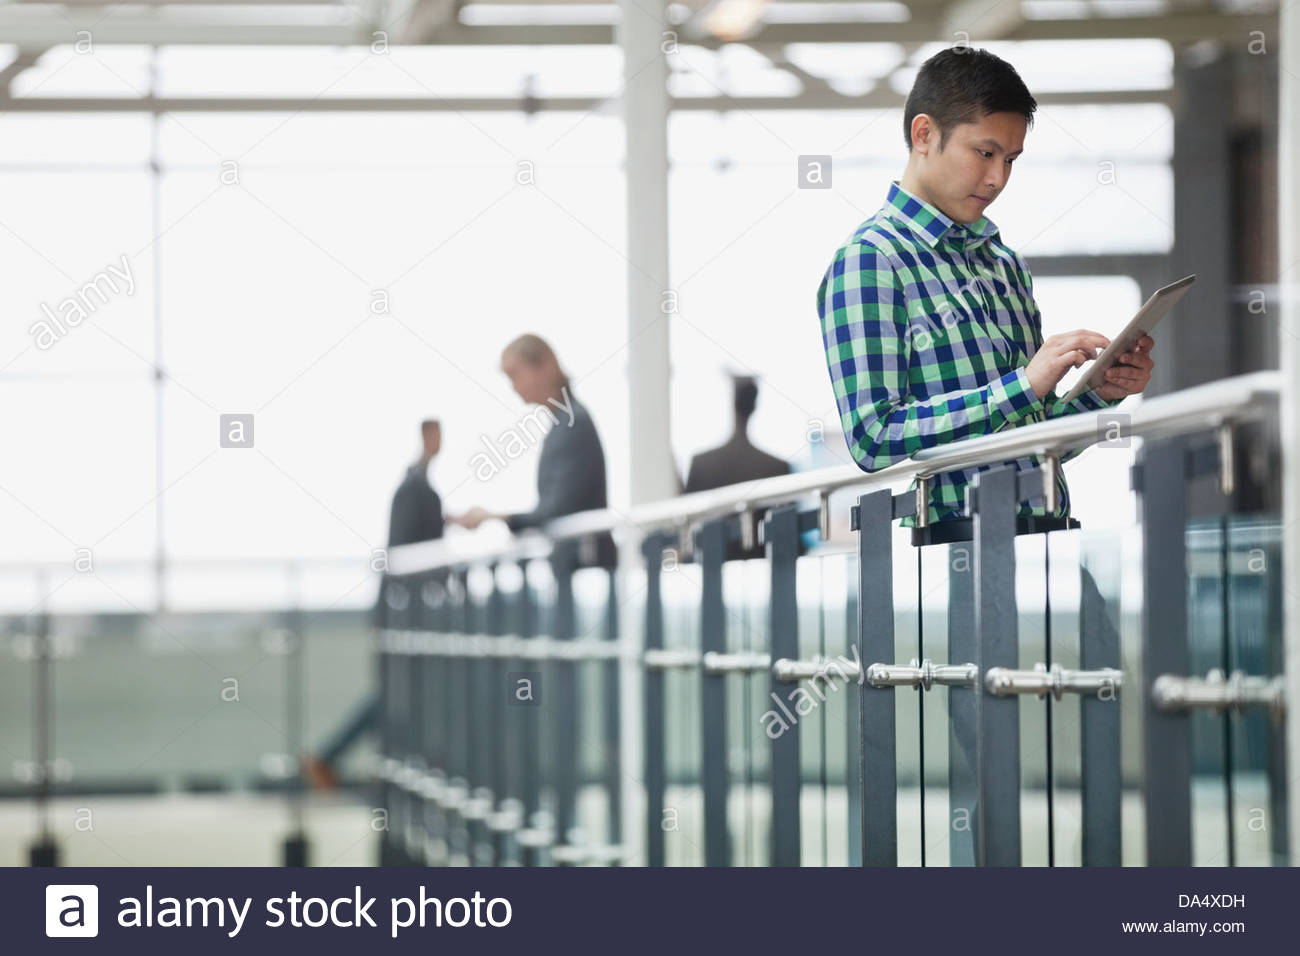 Businessman using digital tablet in office building Photo Stock